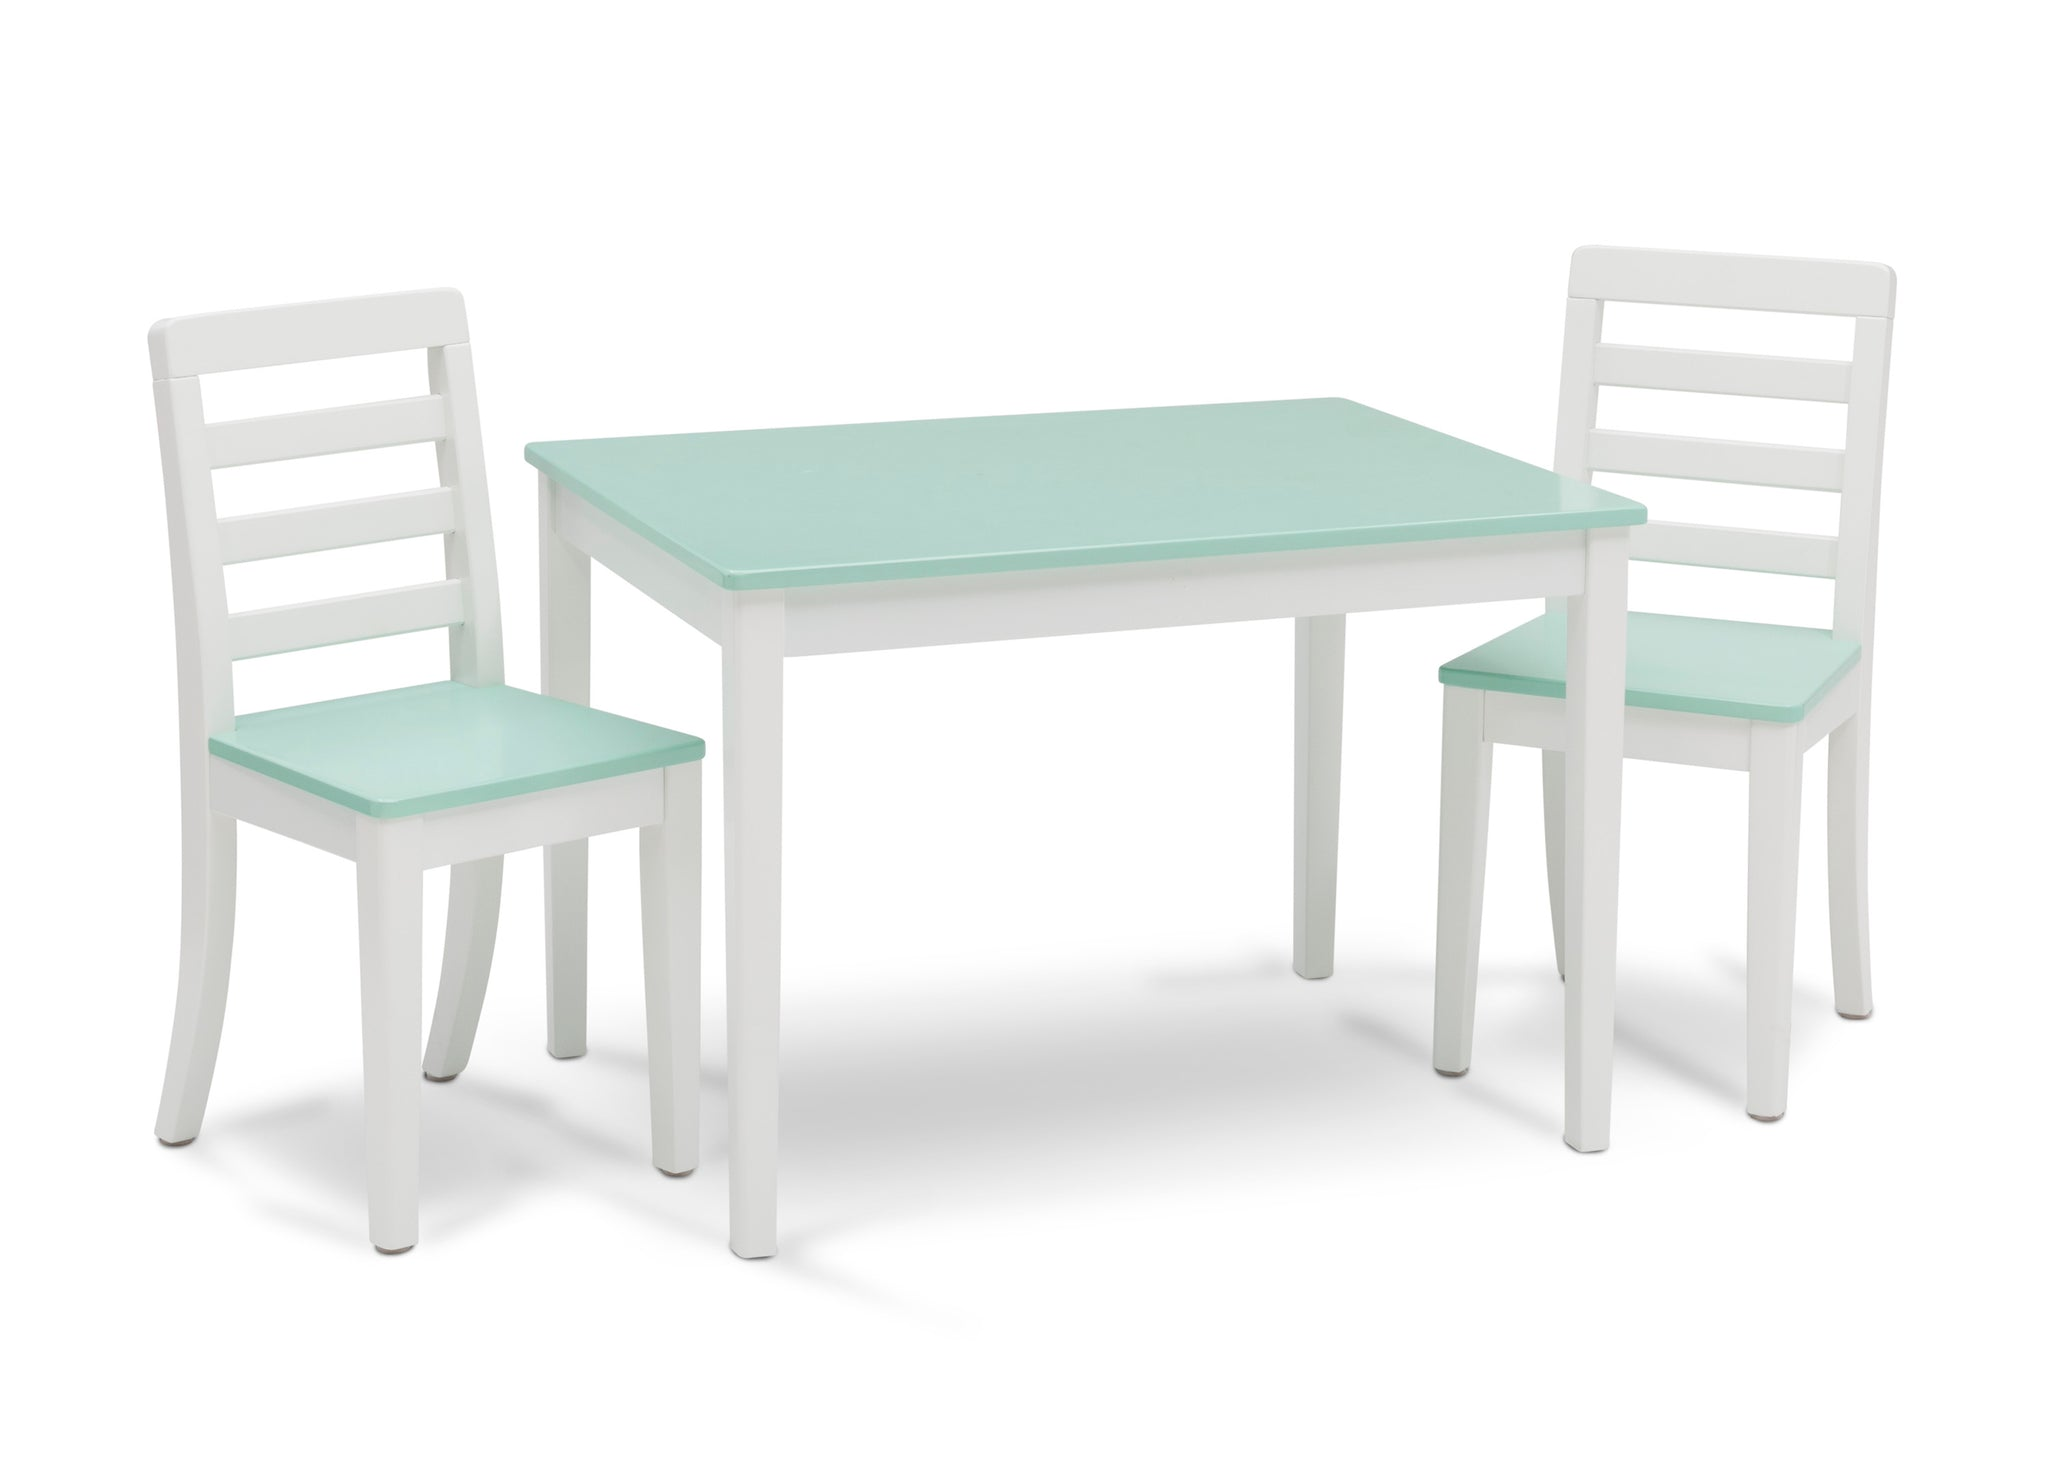 Delta Children Bianca with Aqua (134) Gateway Table & 2 Chair Set, Right Silo View